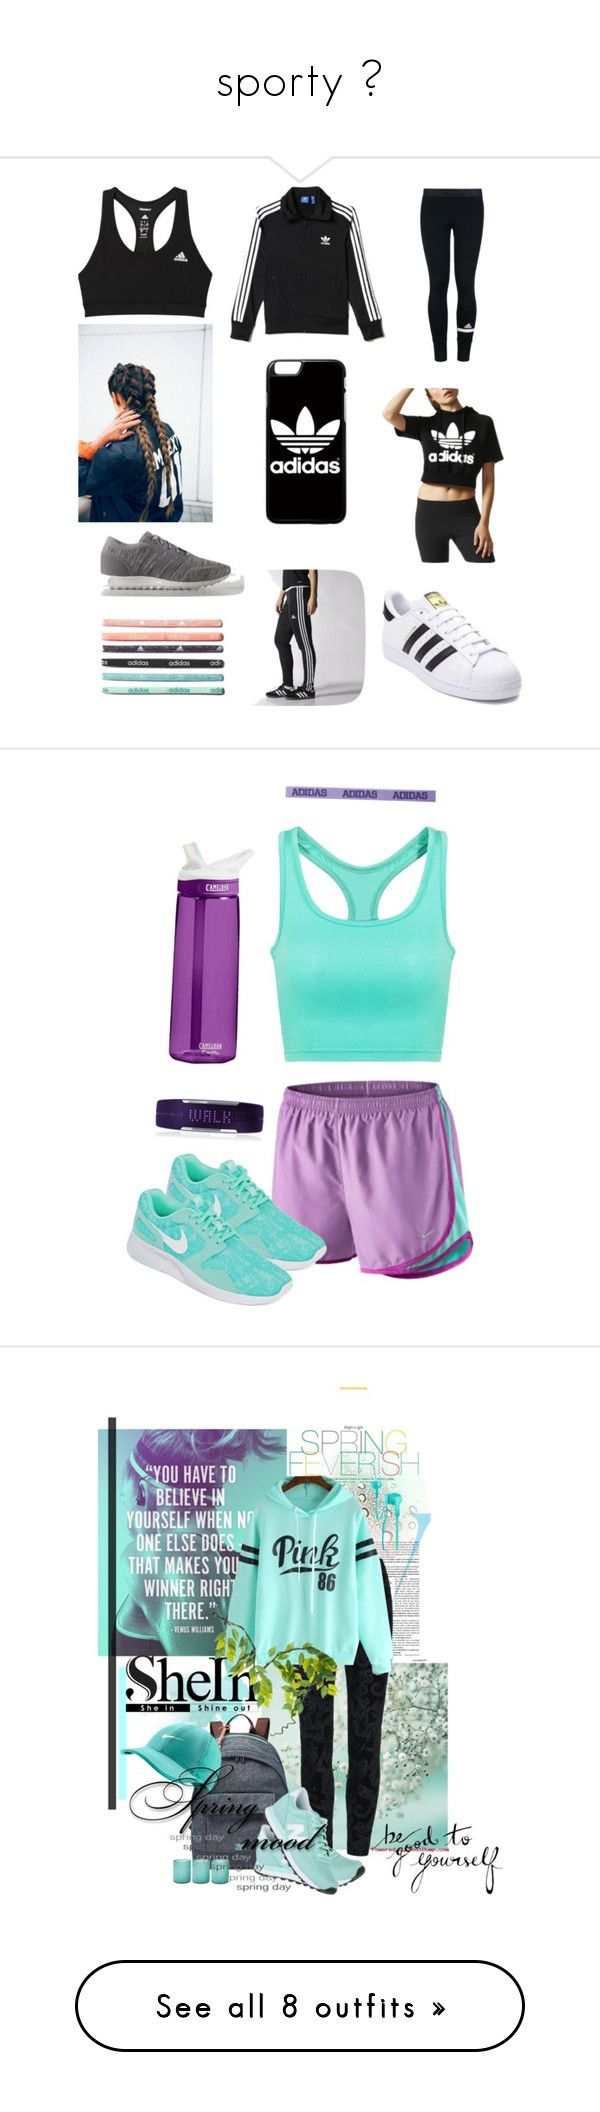 """sporty "" by roney121 ❤ liked on Polyvore featuring adidas, NIKE, Polar, nike, Sports, running, activewear, Victoria Beckham, FEVERISH and FOSSIL"